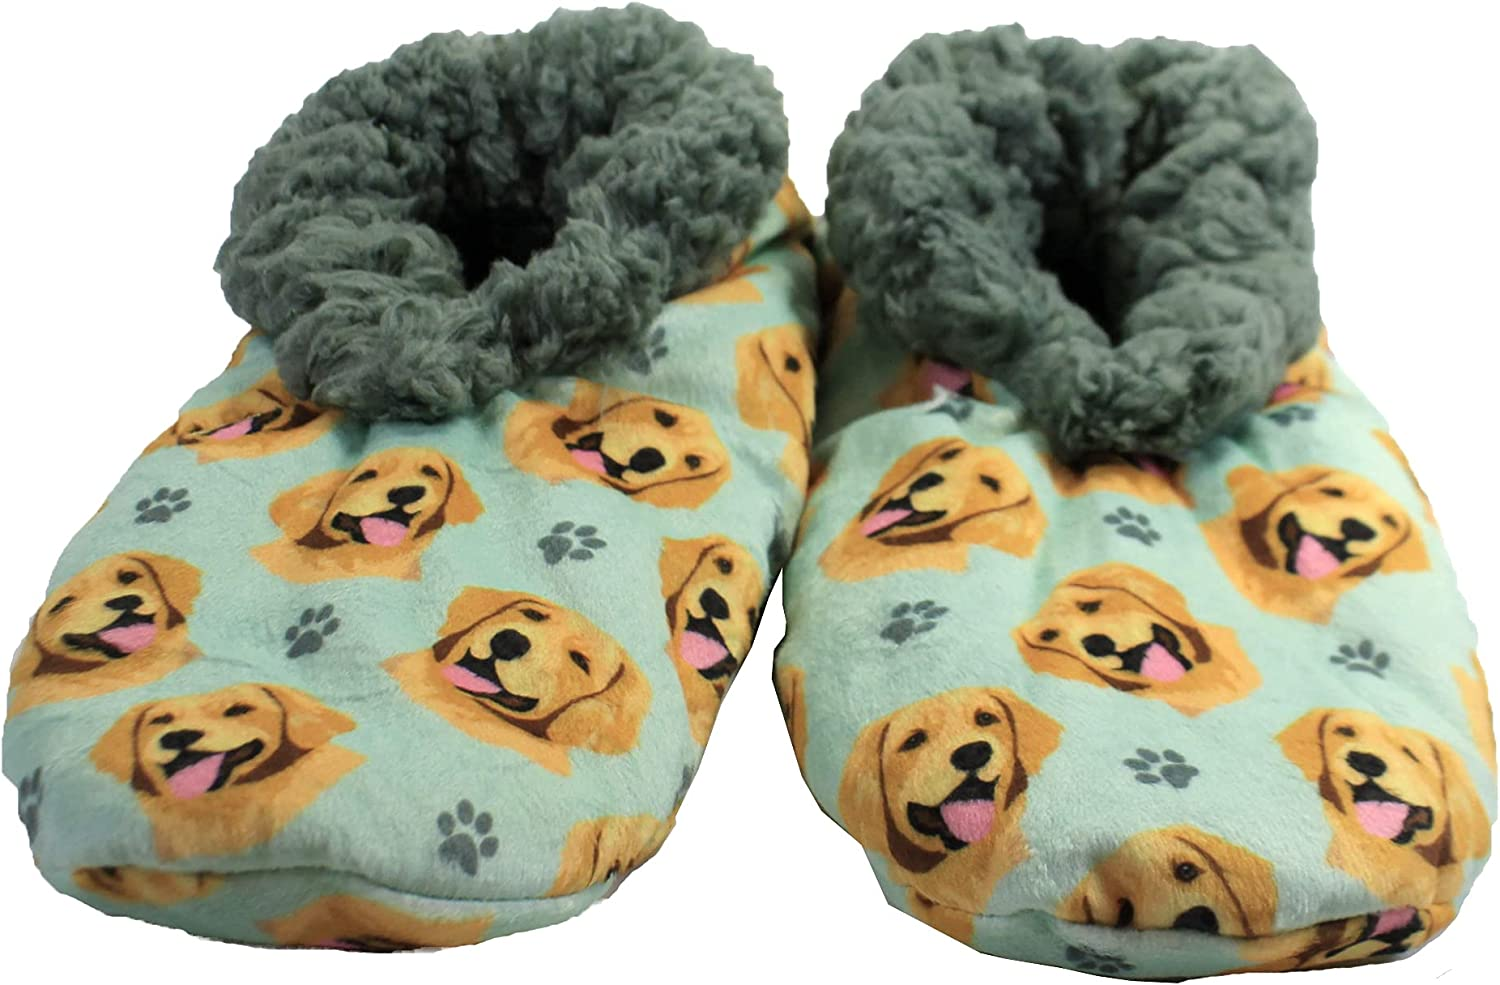 Golden Retriever Super Soft Womens Slippers - One Size Fits Most - Cozy House Slippers - Non Skid Bottom - Perfect for Golden Retriever Gifts